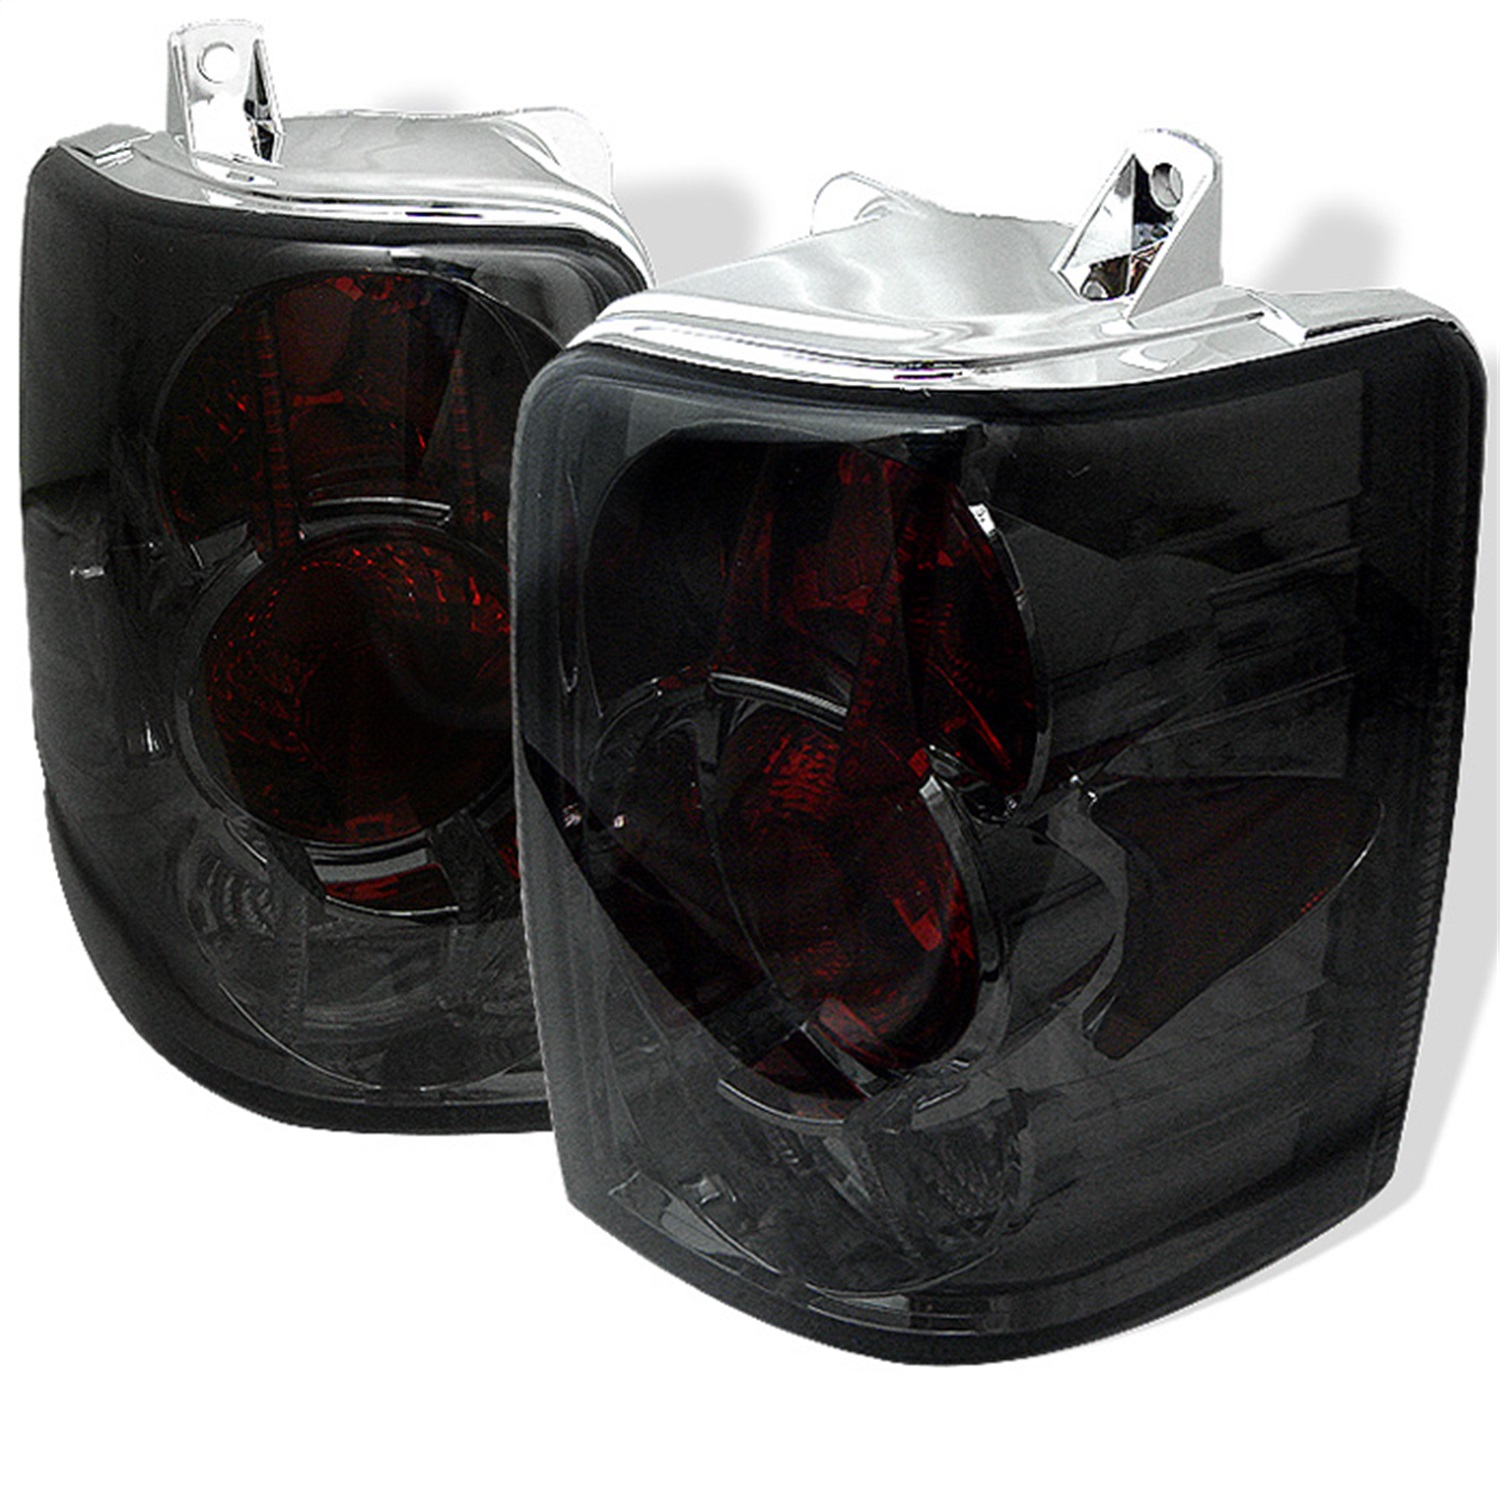 Spyder Auto 5005618 Euro Style Tail Lights Fits 93-98 Grand Cherokee